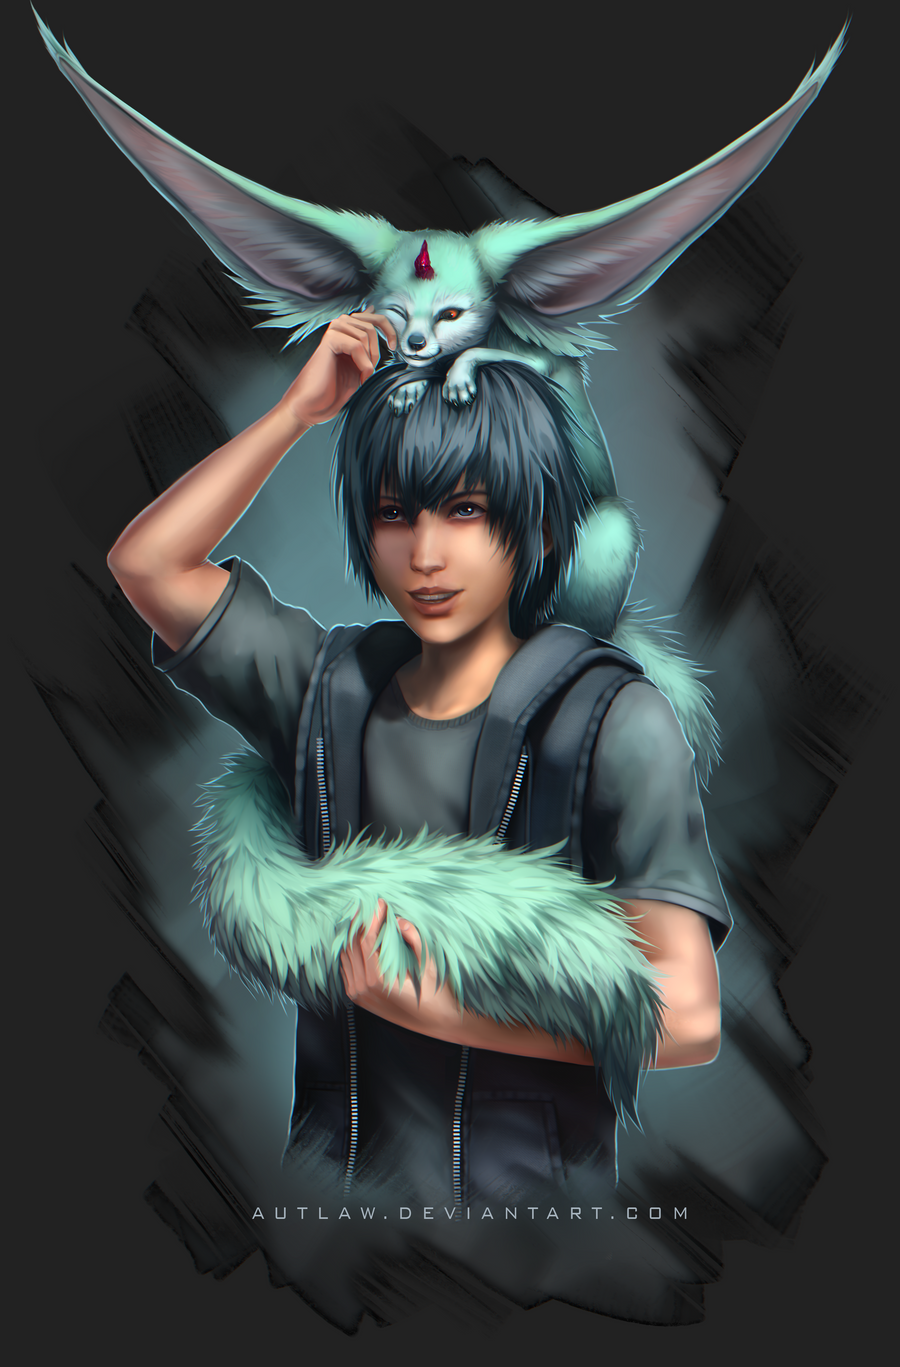 ff15 carbuncle by invaderdeepsauce - photo #16